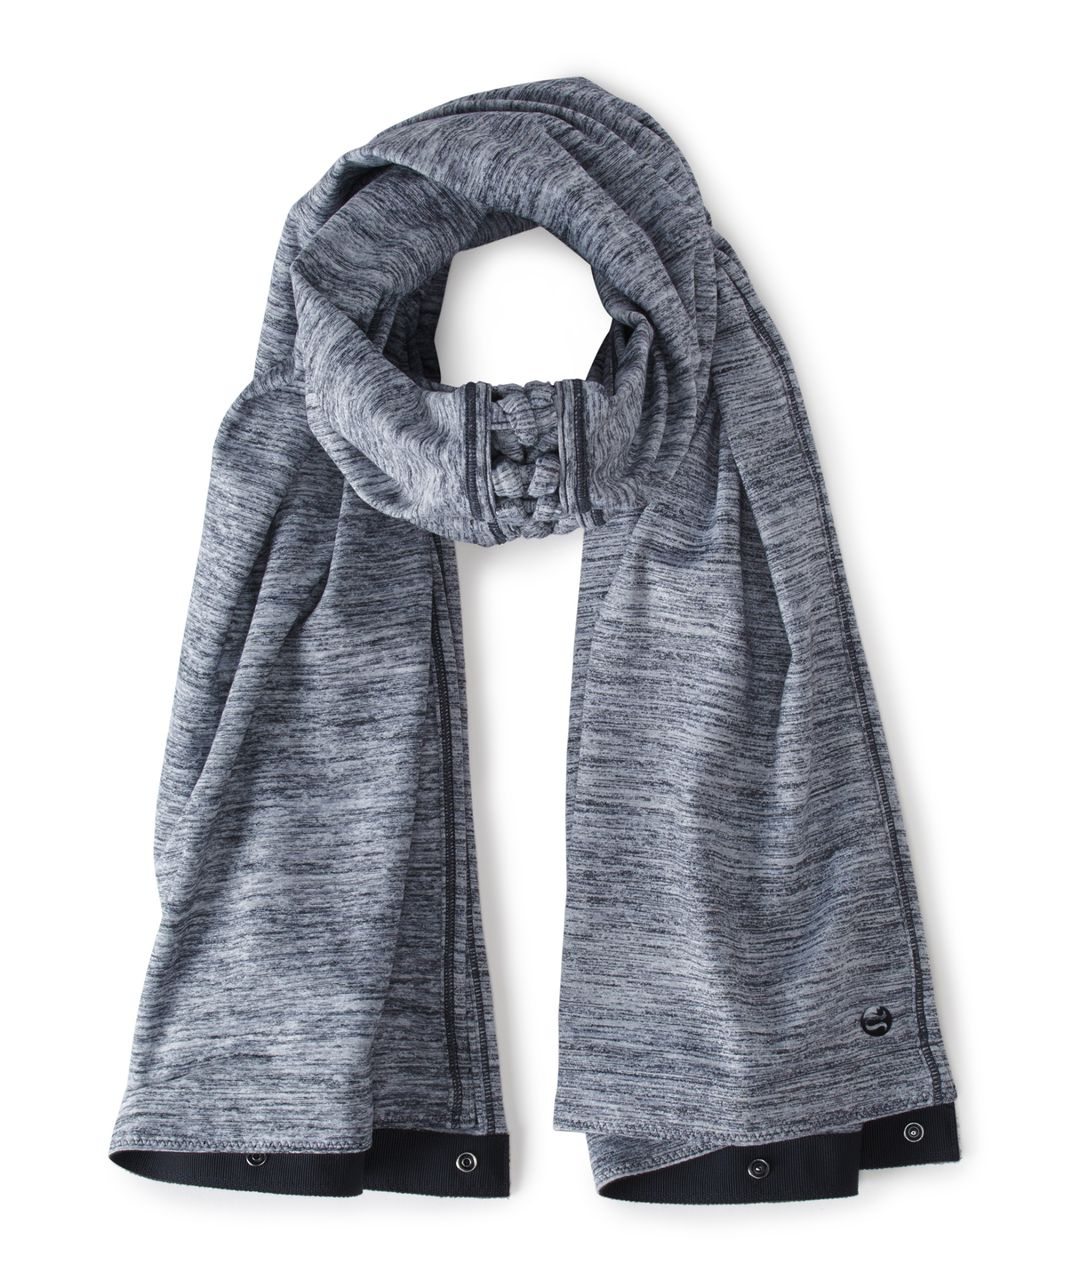 Lululemon Vinyasa Scarf (Braid) - Space Dye Camo Seal Grey Deep Coal